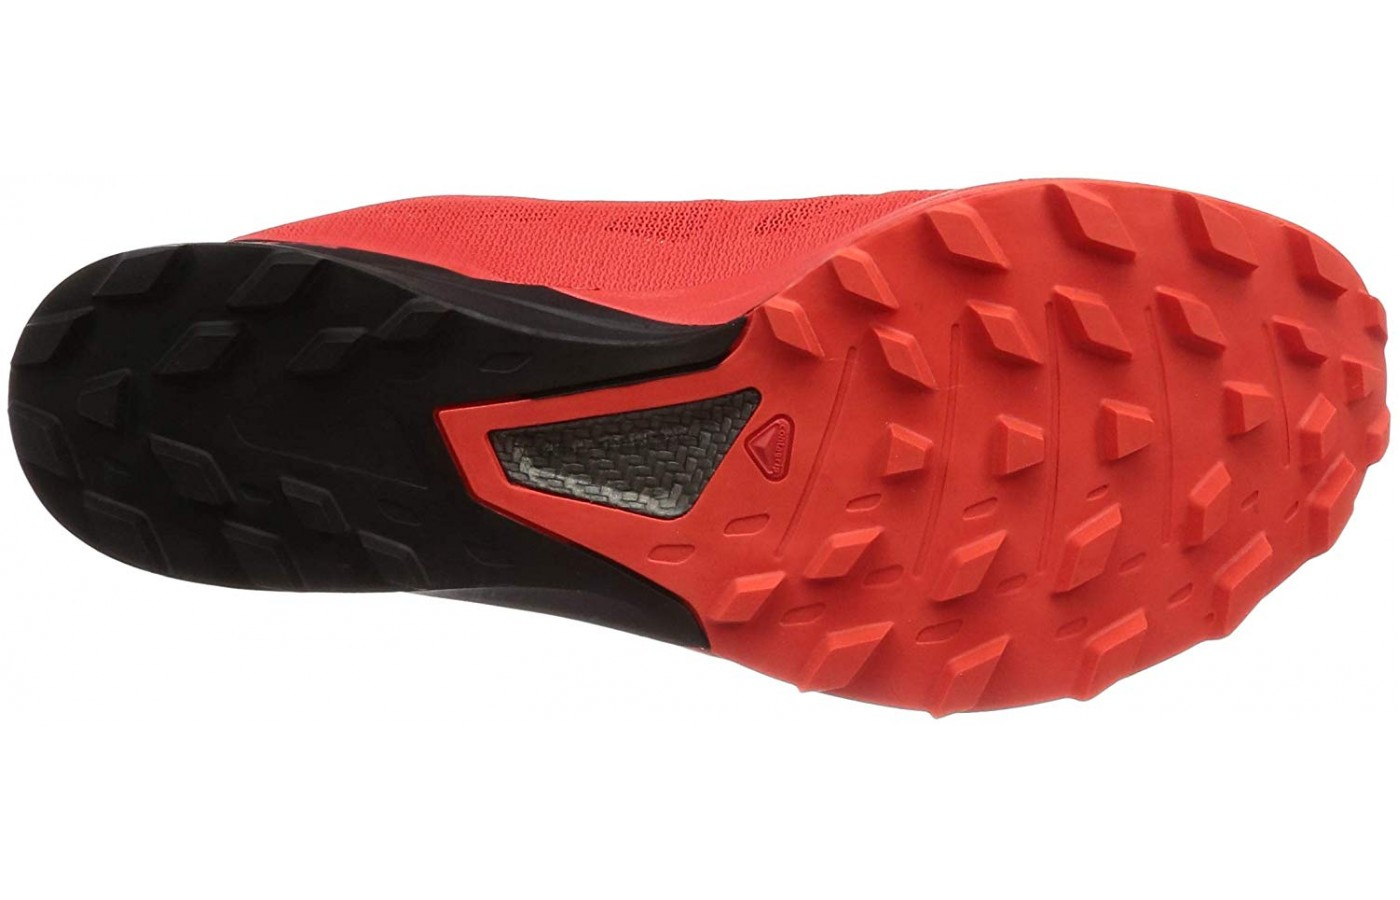 The outsole is made of Premium Wet Traction Contragrip.